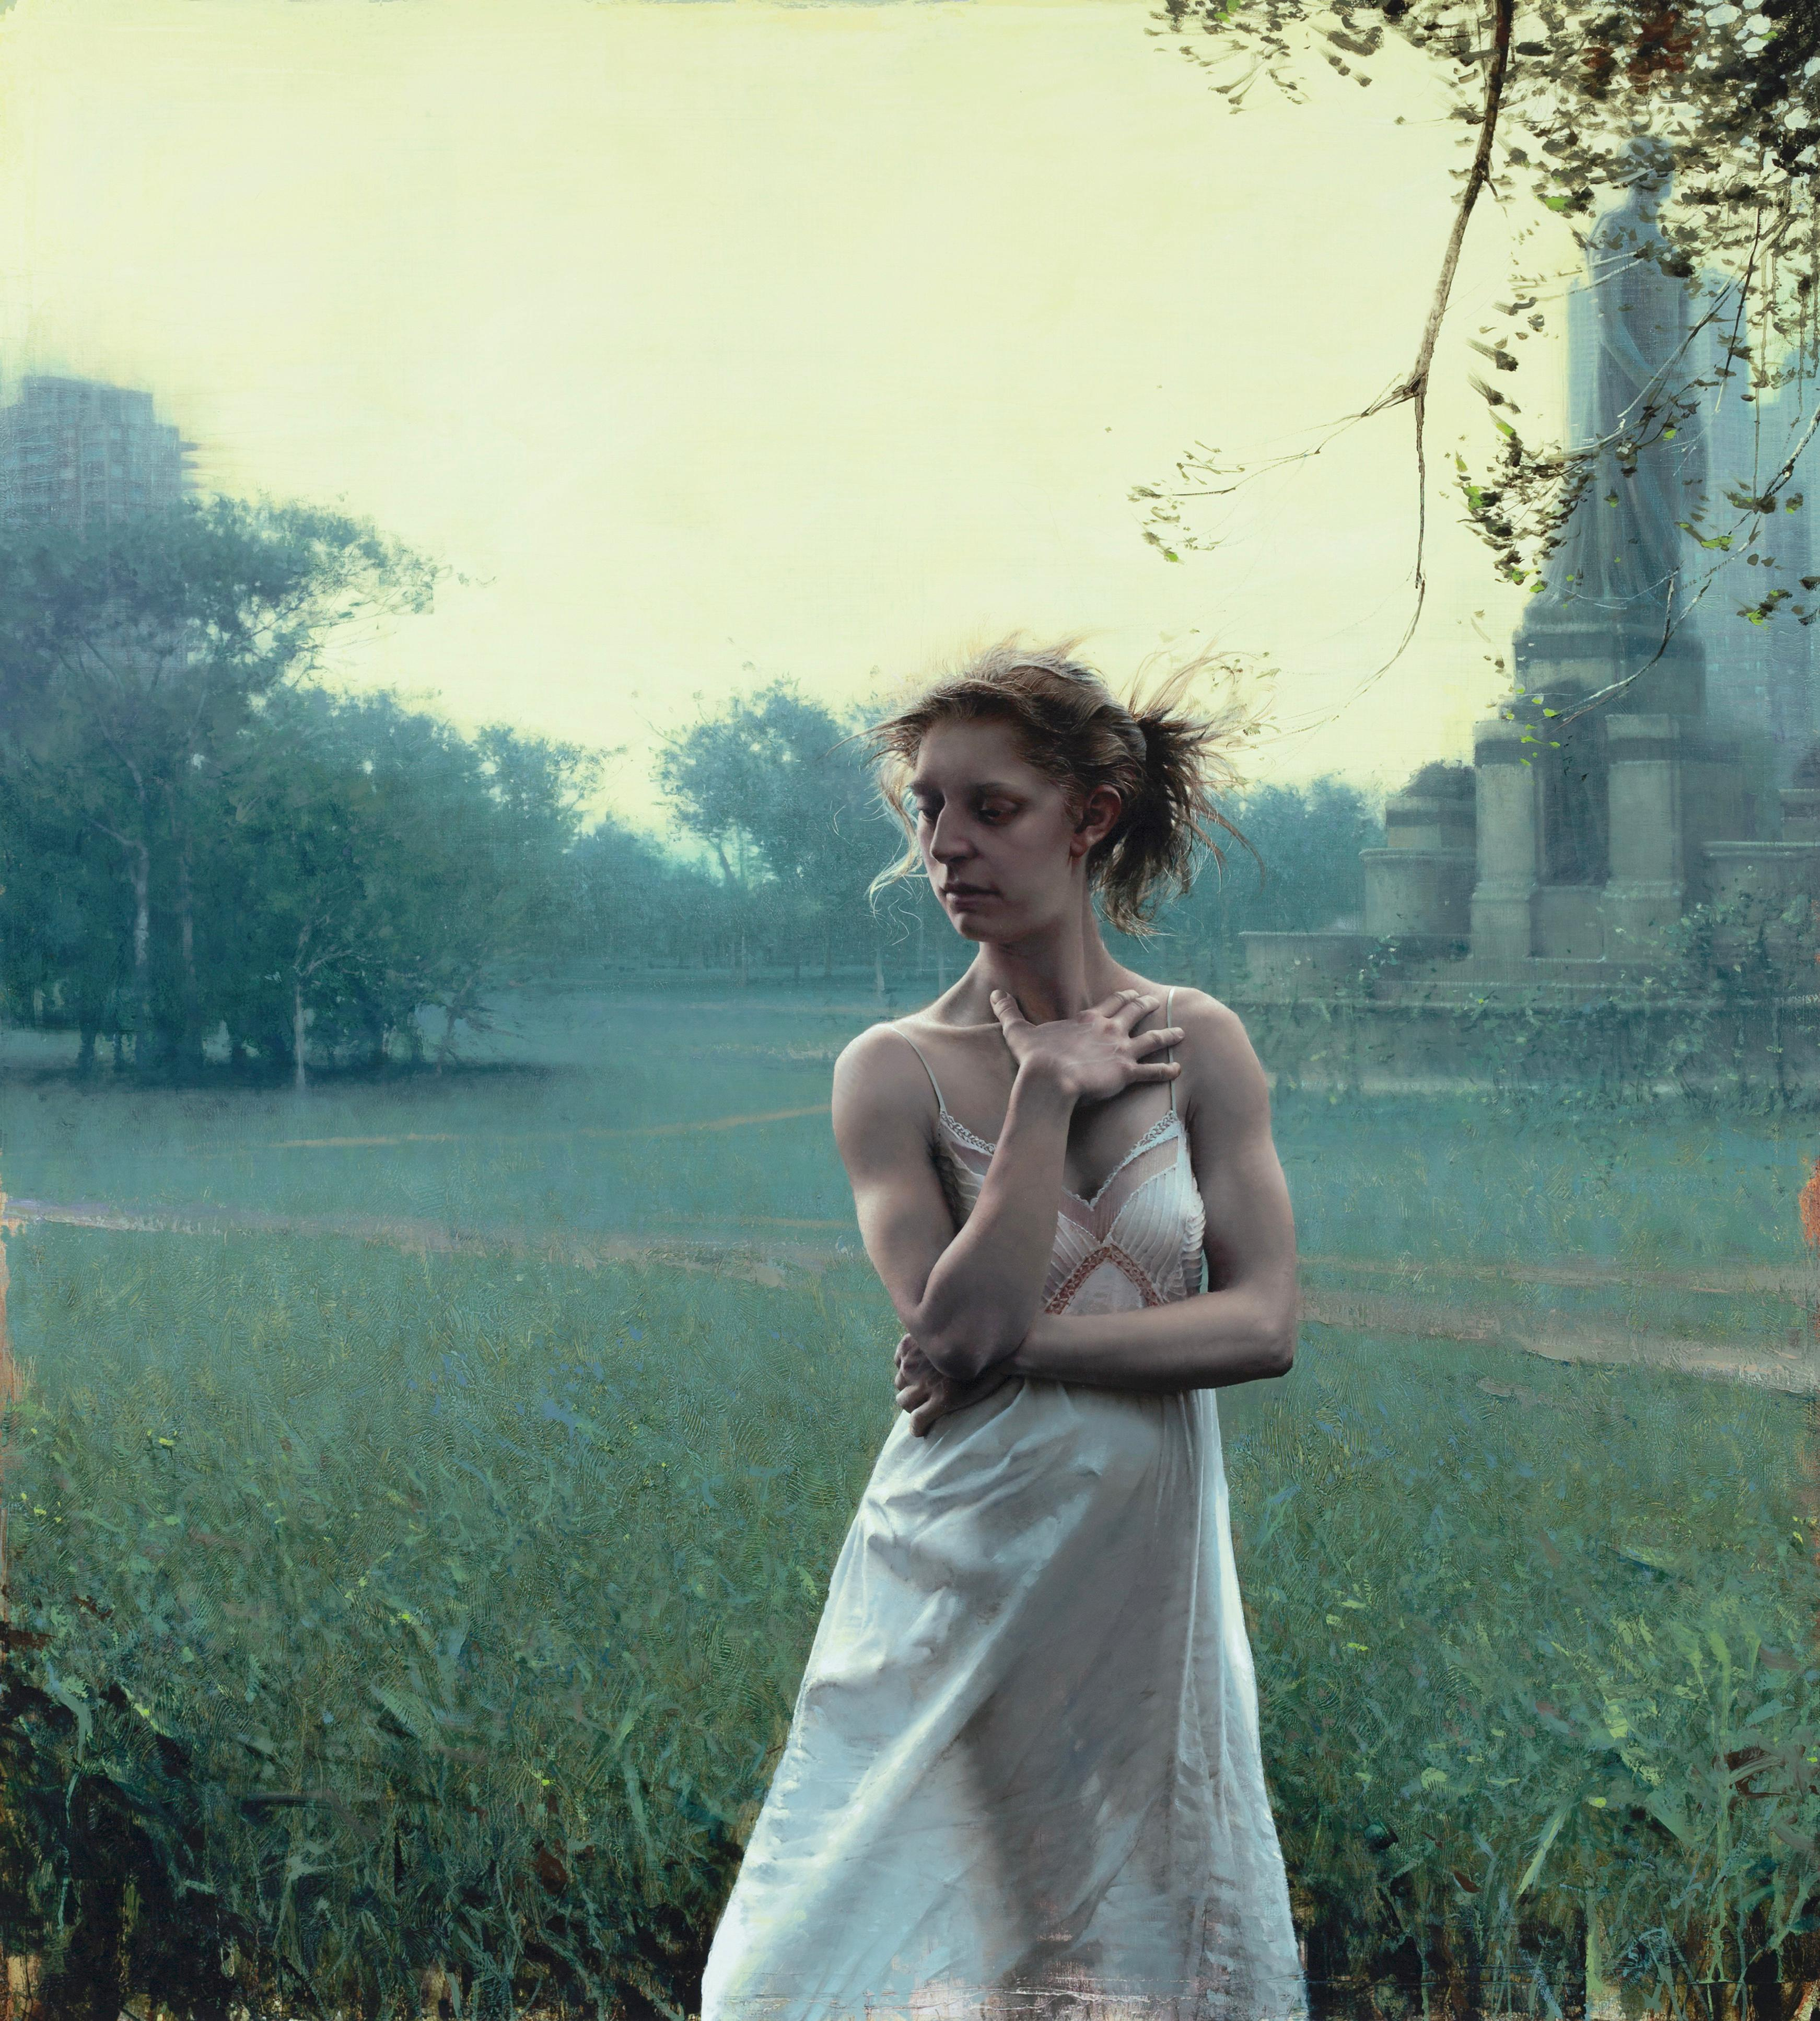 WAKE FROM DREAM., Photorealism, Woman in White Dress, landscape